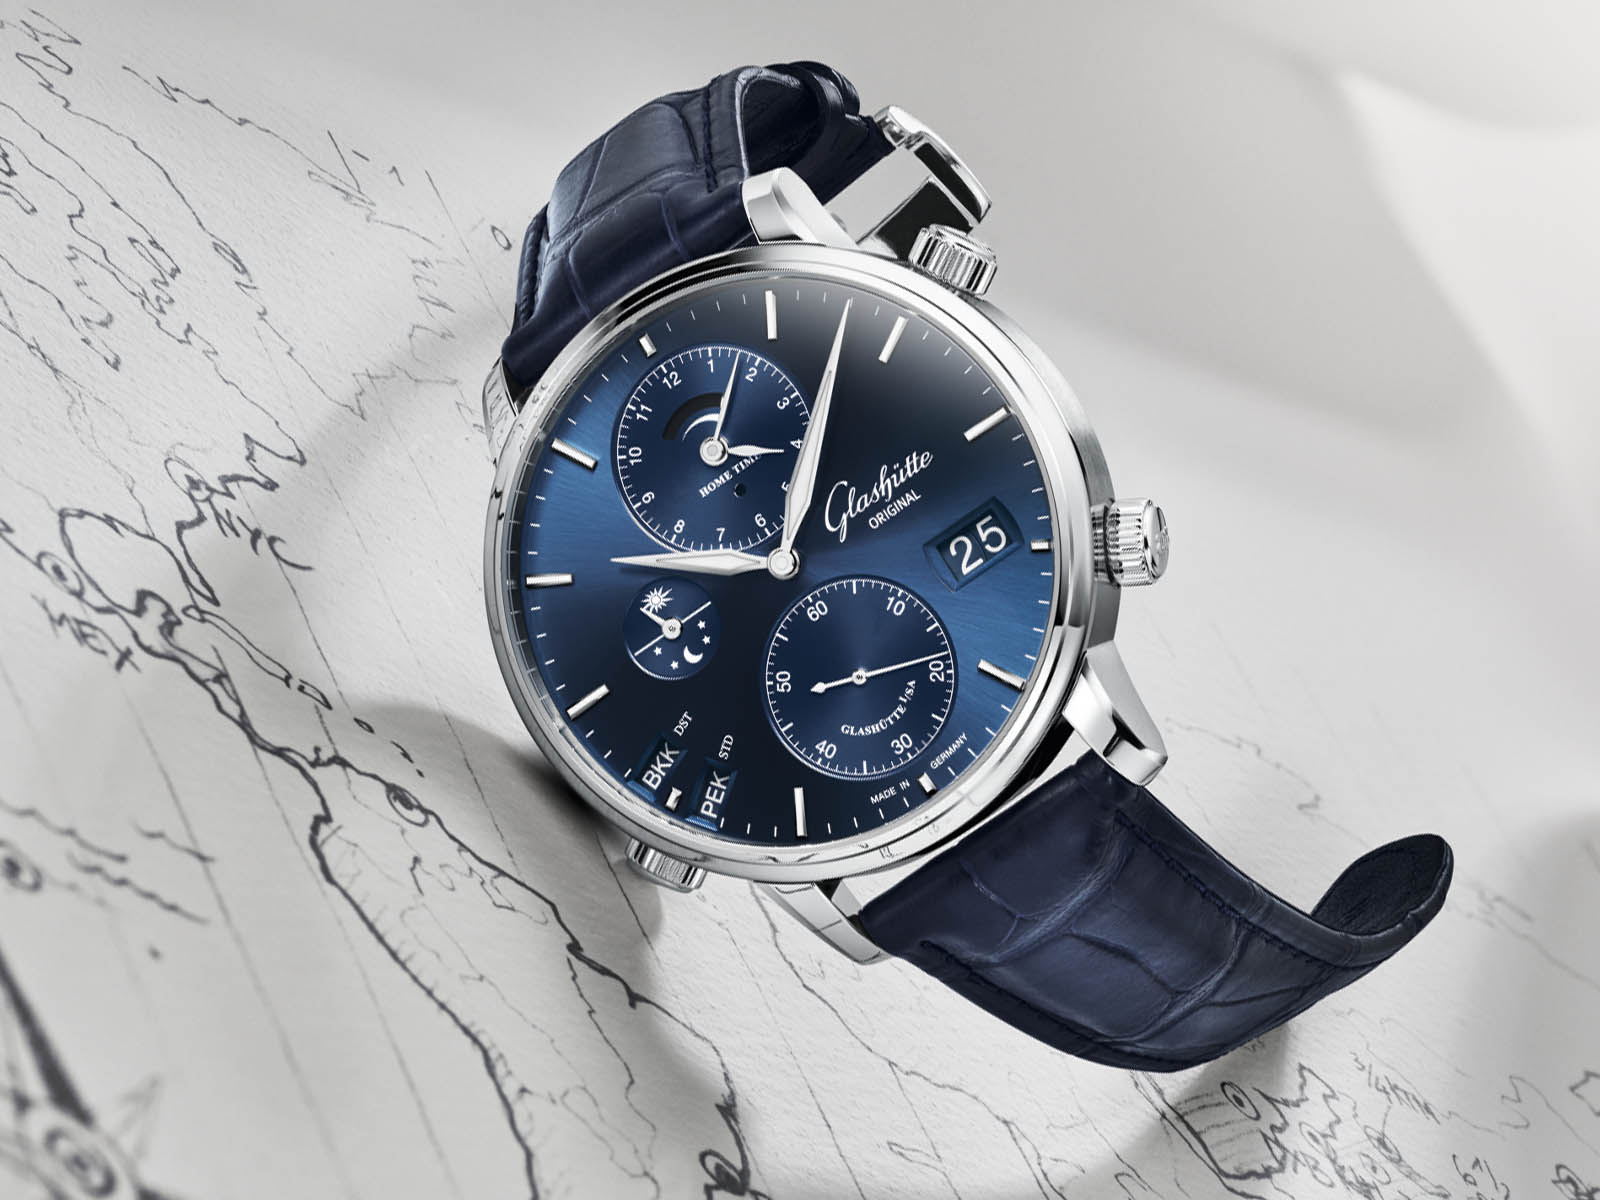 1-89-02-05-02-30-glashutte-original-senator-cosmopolite-midnight-blue-2.jpg